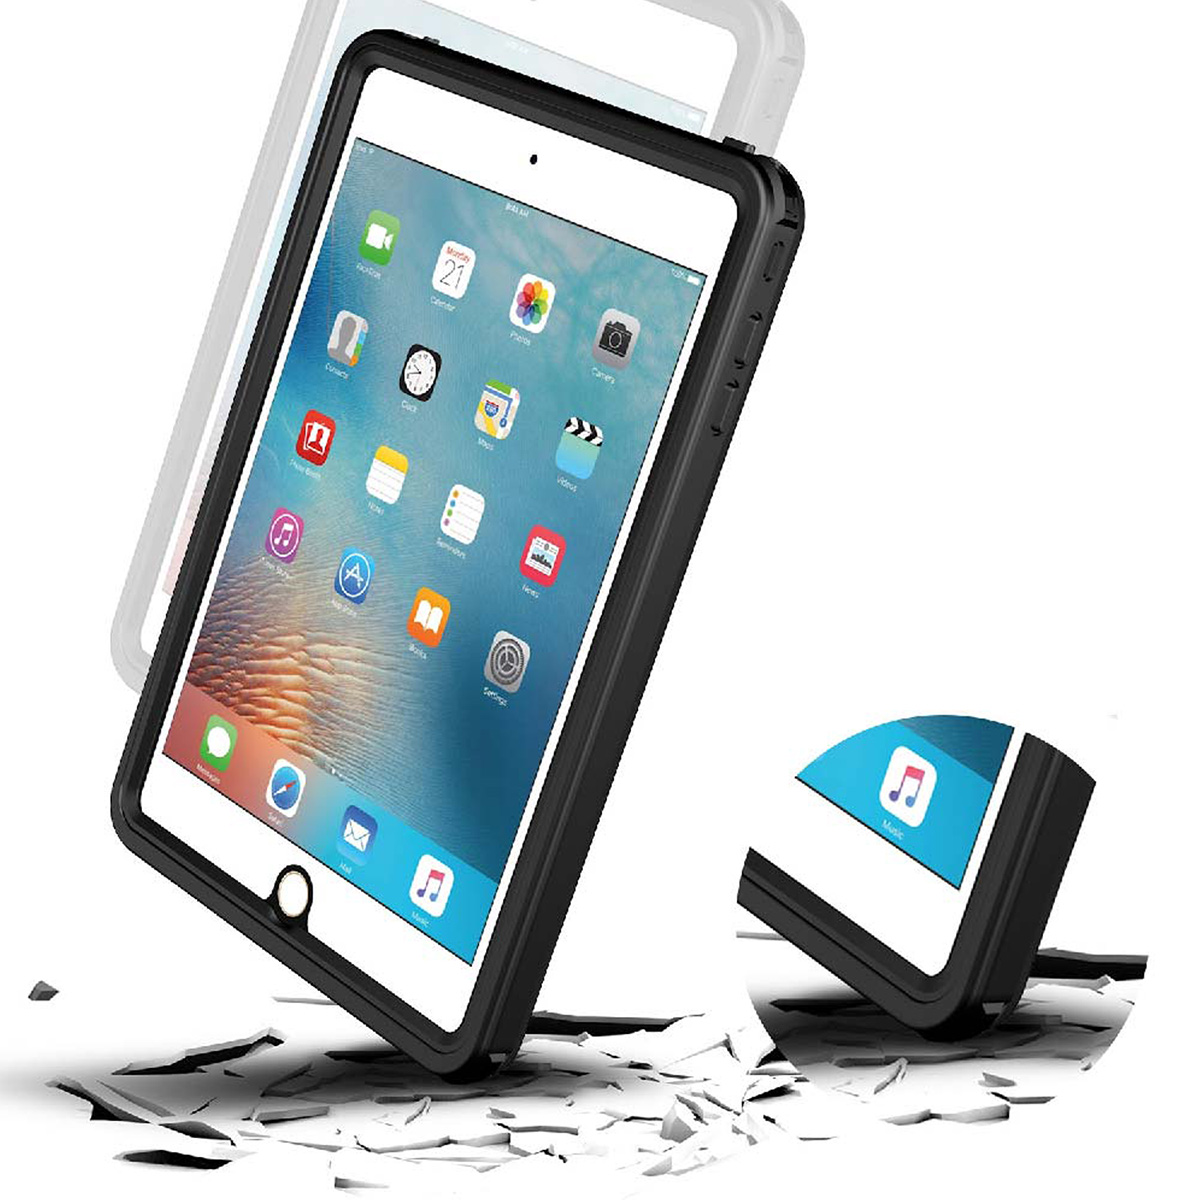 Image 5 - For iPad Mini 4 Waterproof Tablet Case Shockproof Dust Proof Tablet Cover with Adjustable Tablet Stand Built in Screen Protector-in Tablets & e-Books Case from Computer & Office